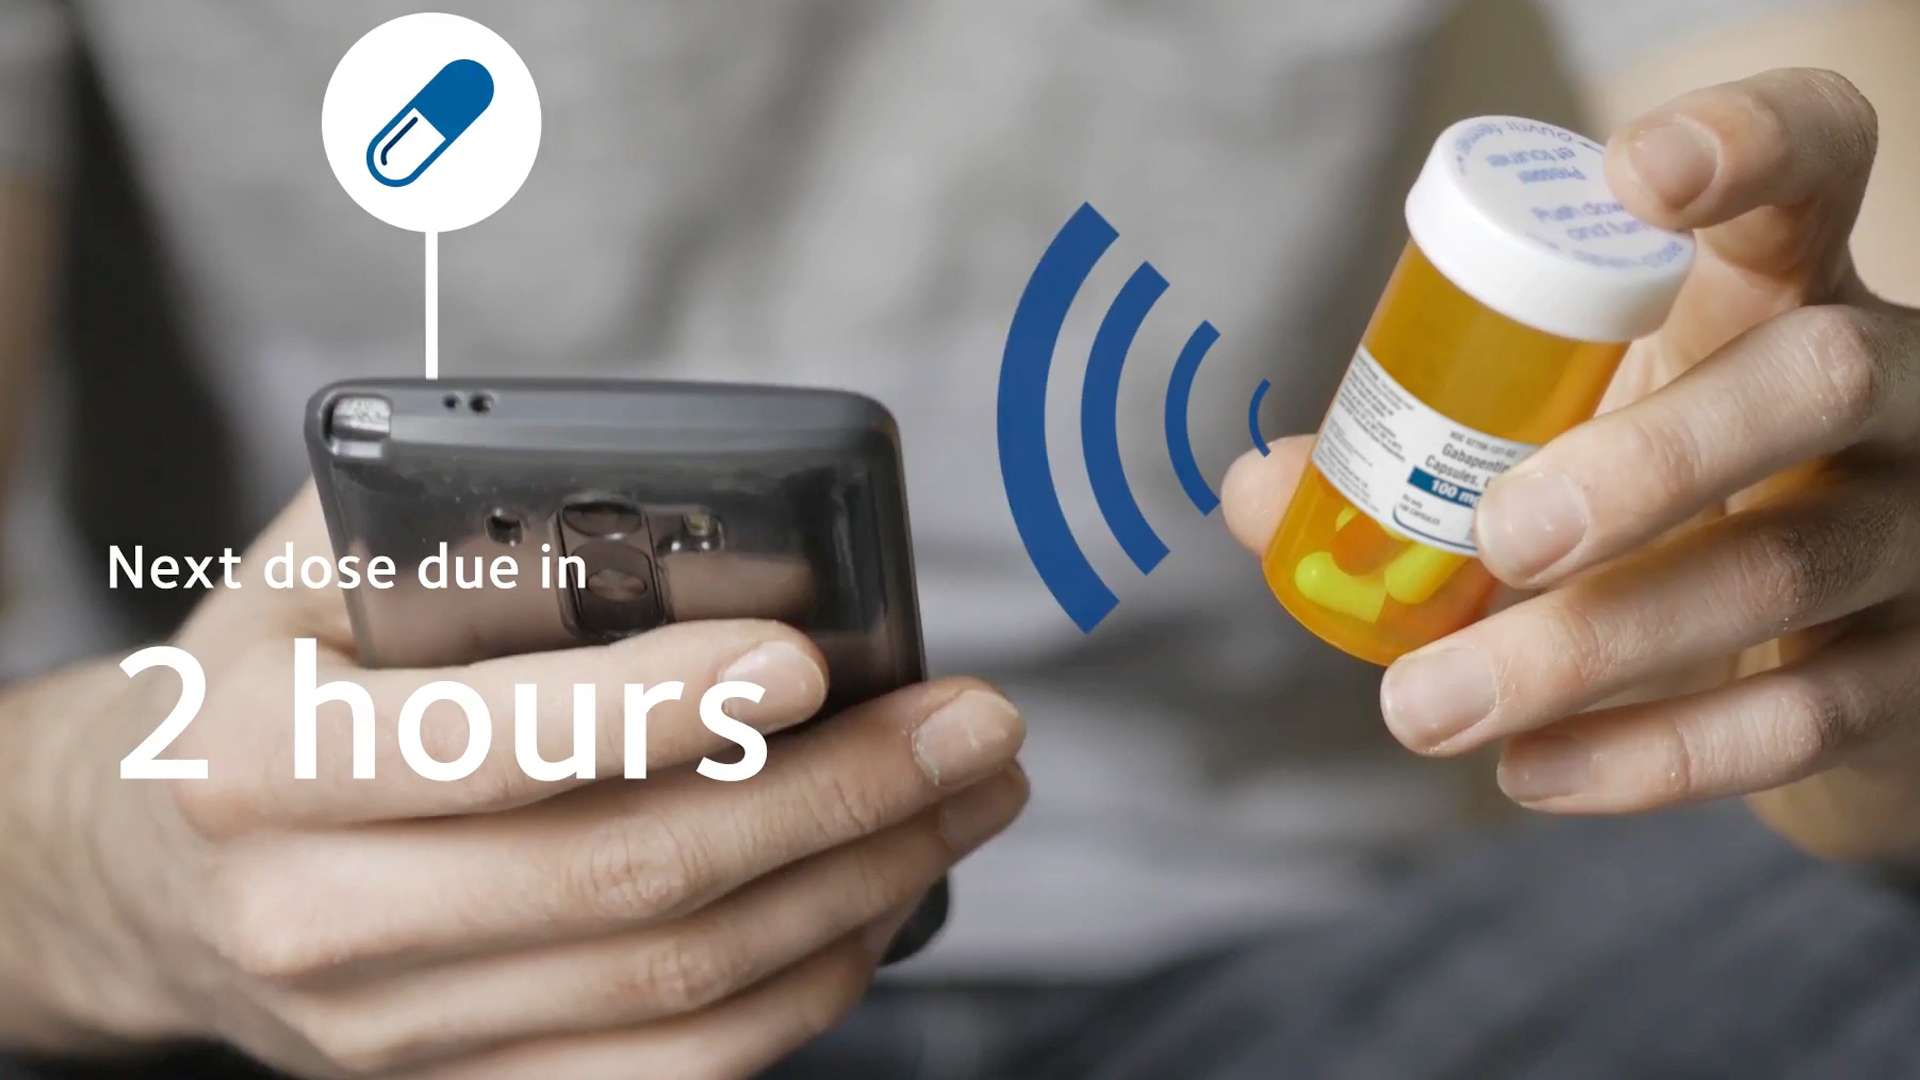 A photo of smart pharmaceutical packaging